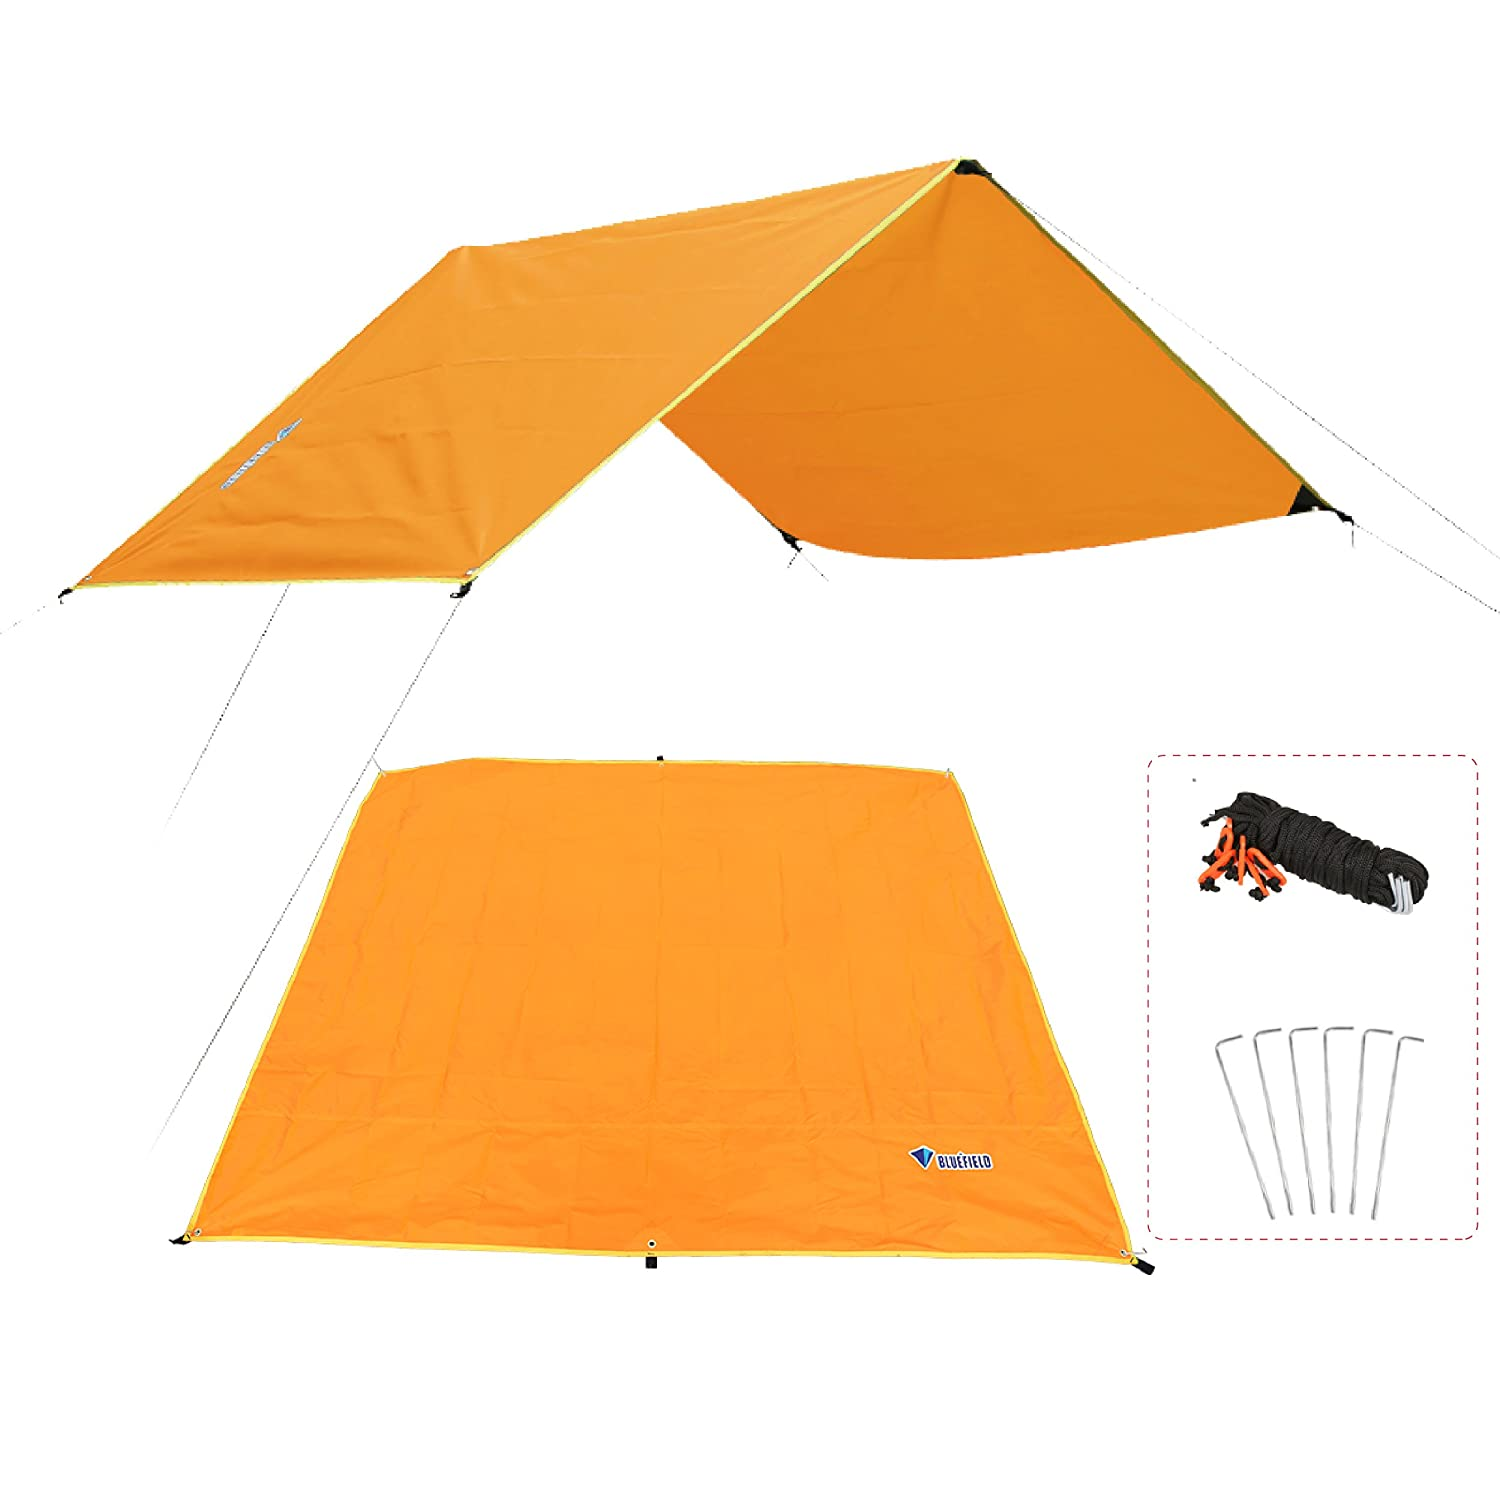 Azarxis Hamaca Rain Fly Tent Tarp Ground Cloth Footprint Shelter Sombrilla Beach Picnic Manta Mat Sand Free Large para Acampar al Aire Libre Park Lawn Grass con Stakes Rope